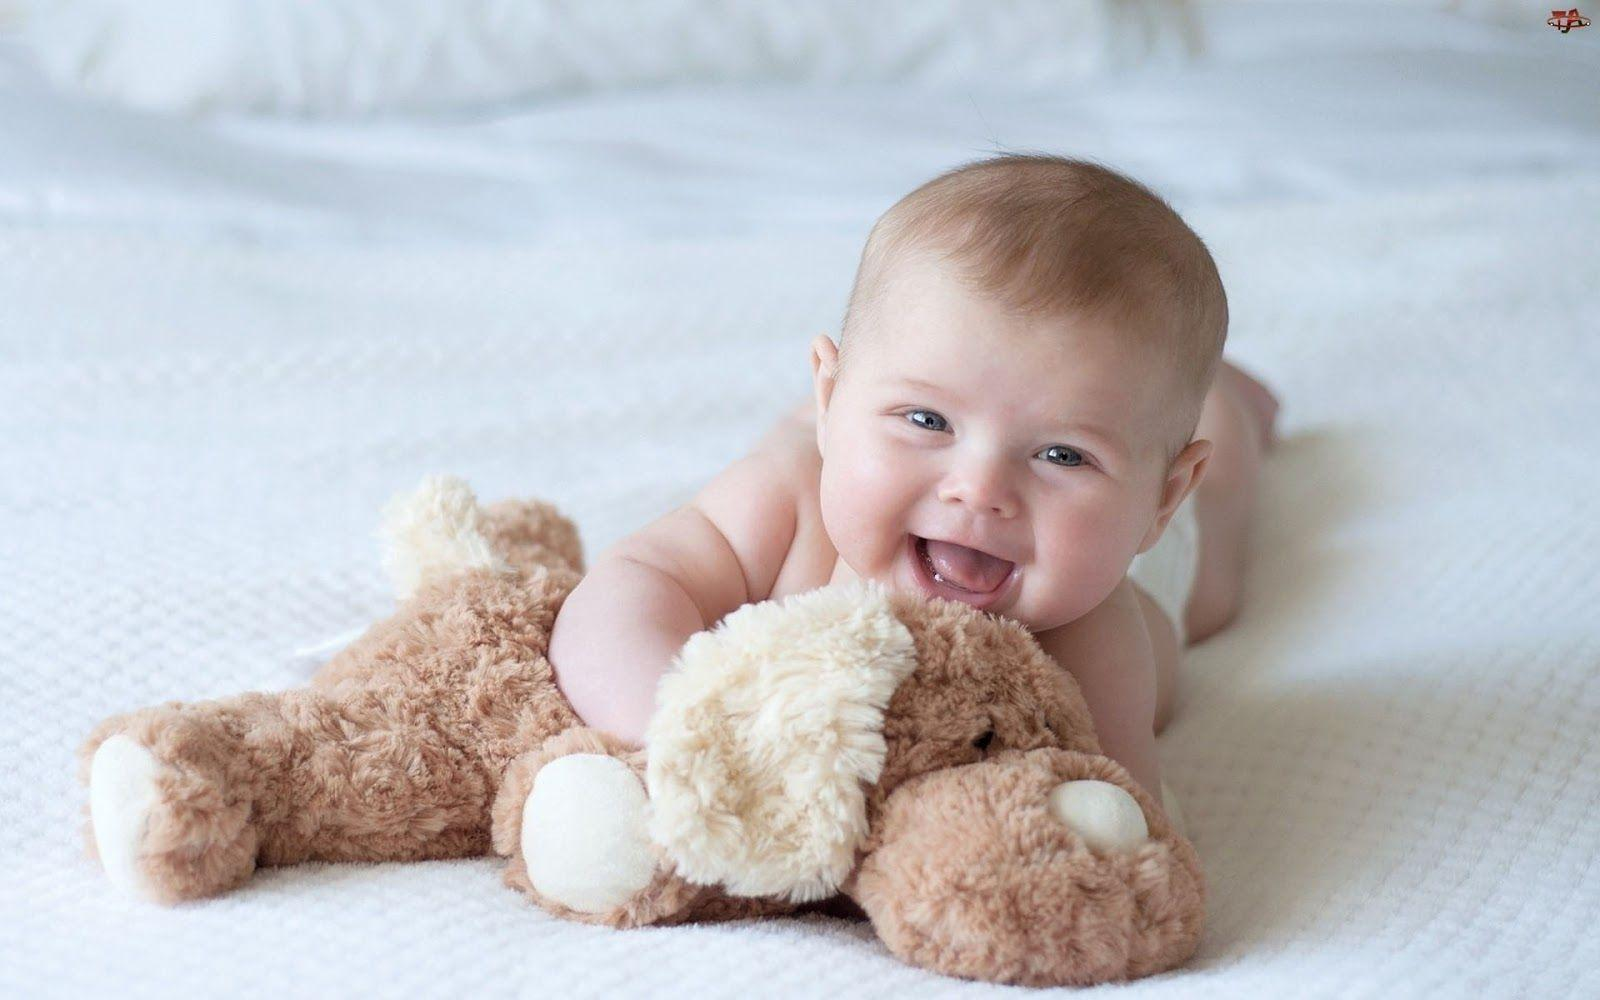 cute baby boy pictures wallpapers - wallpaper cave